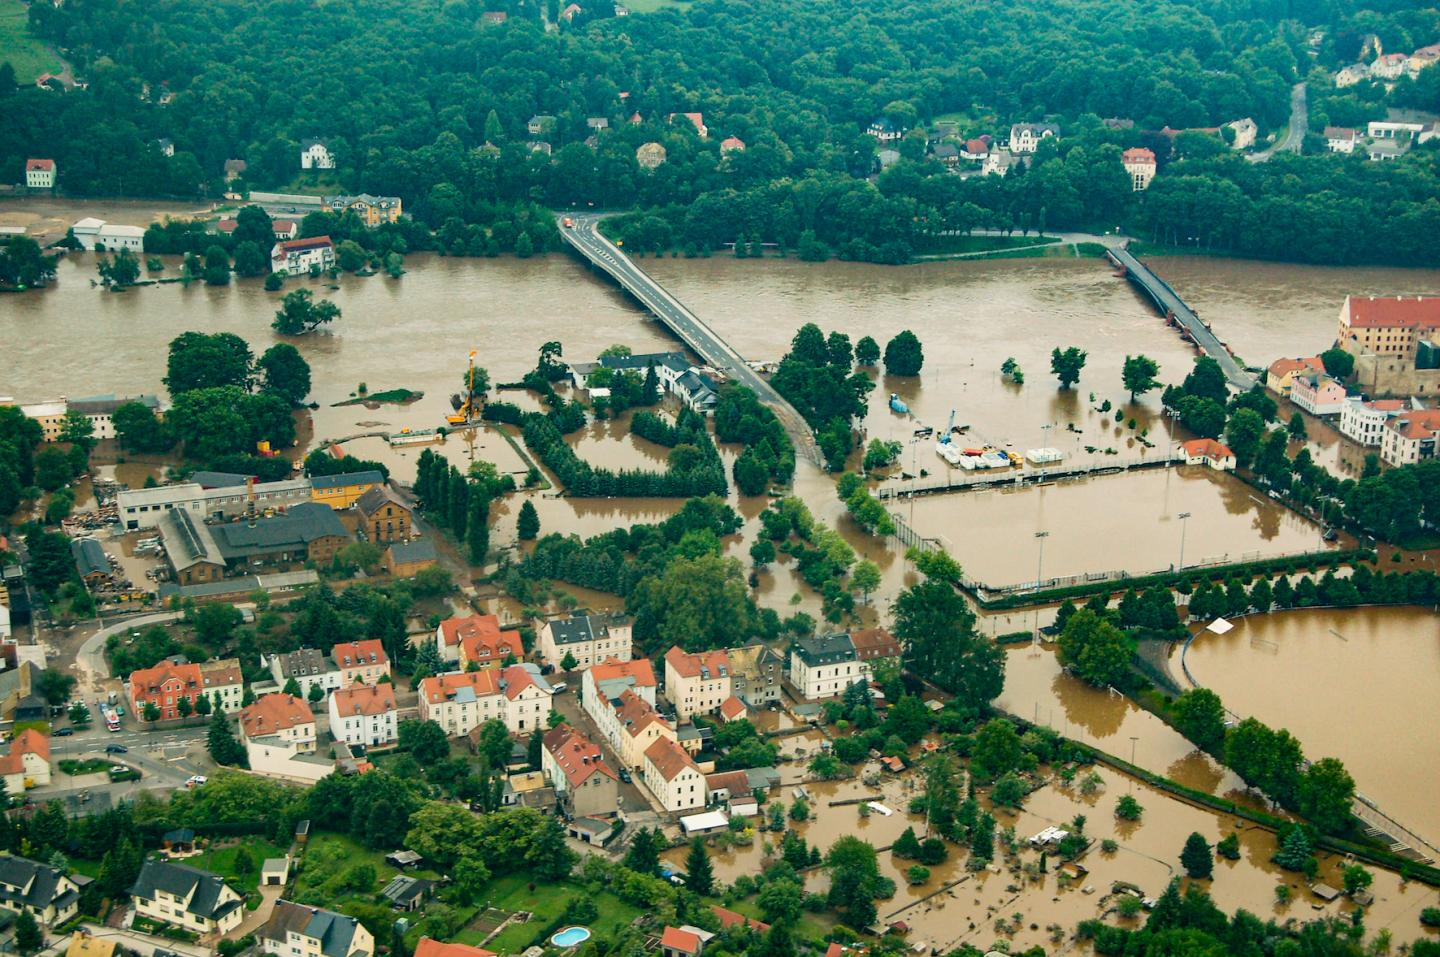 Inundated City in Germany